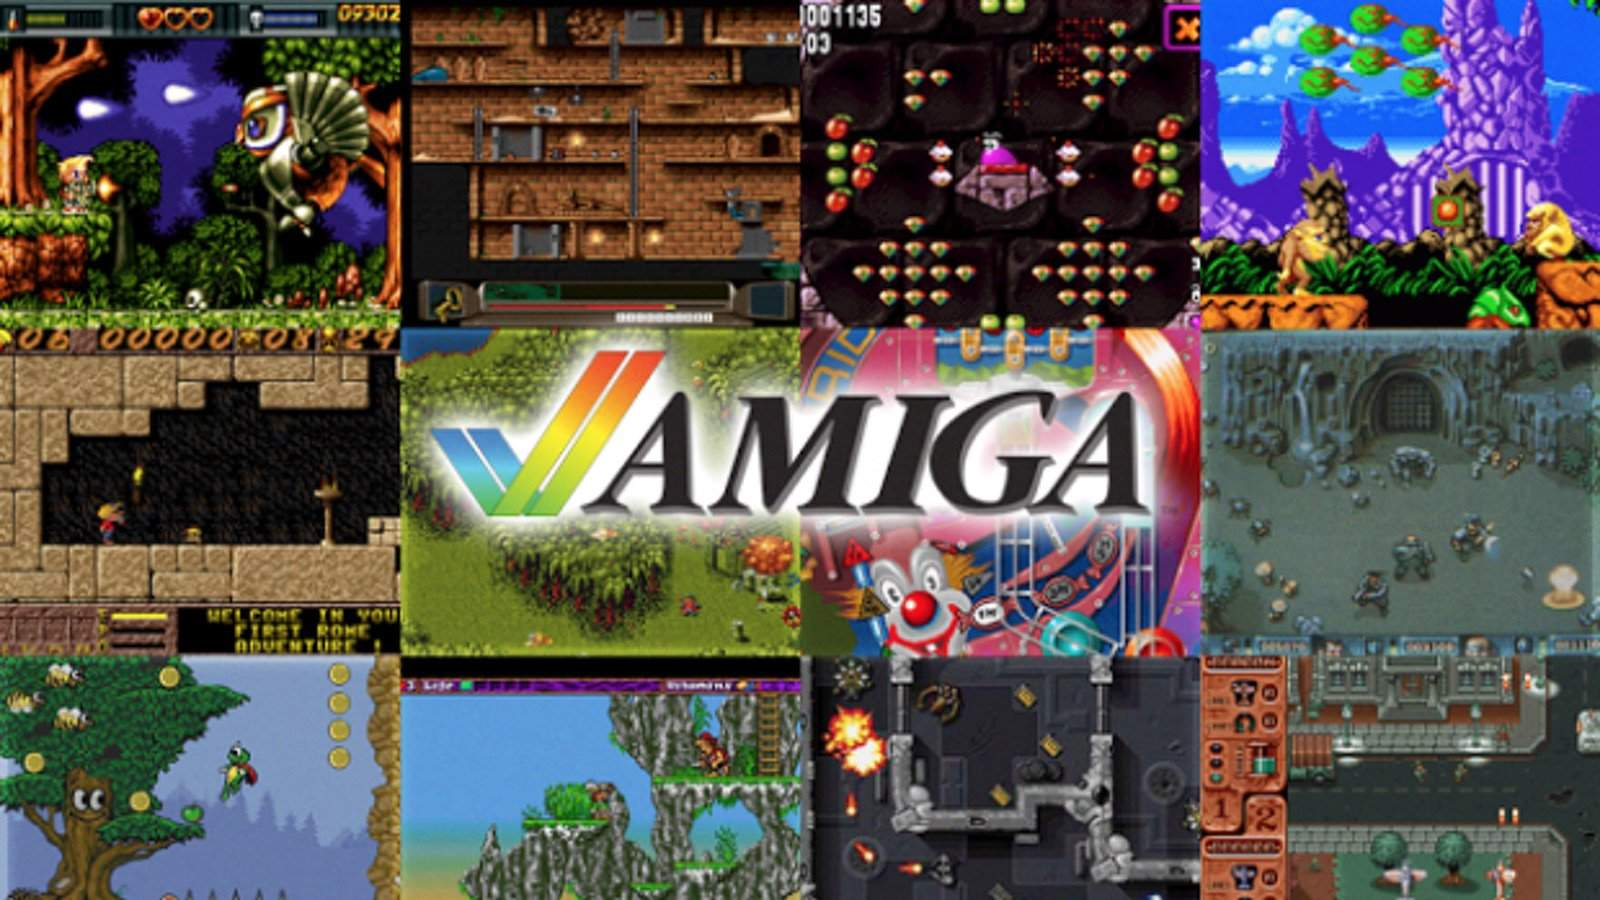 Over 10,000 Amiga Games Now Available For Free Online